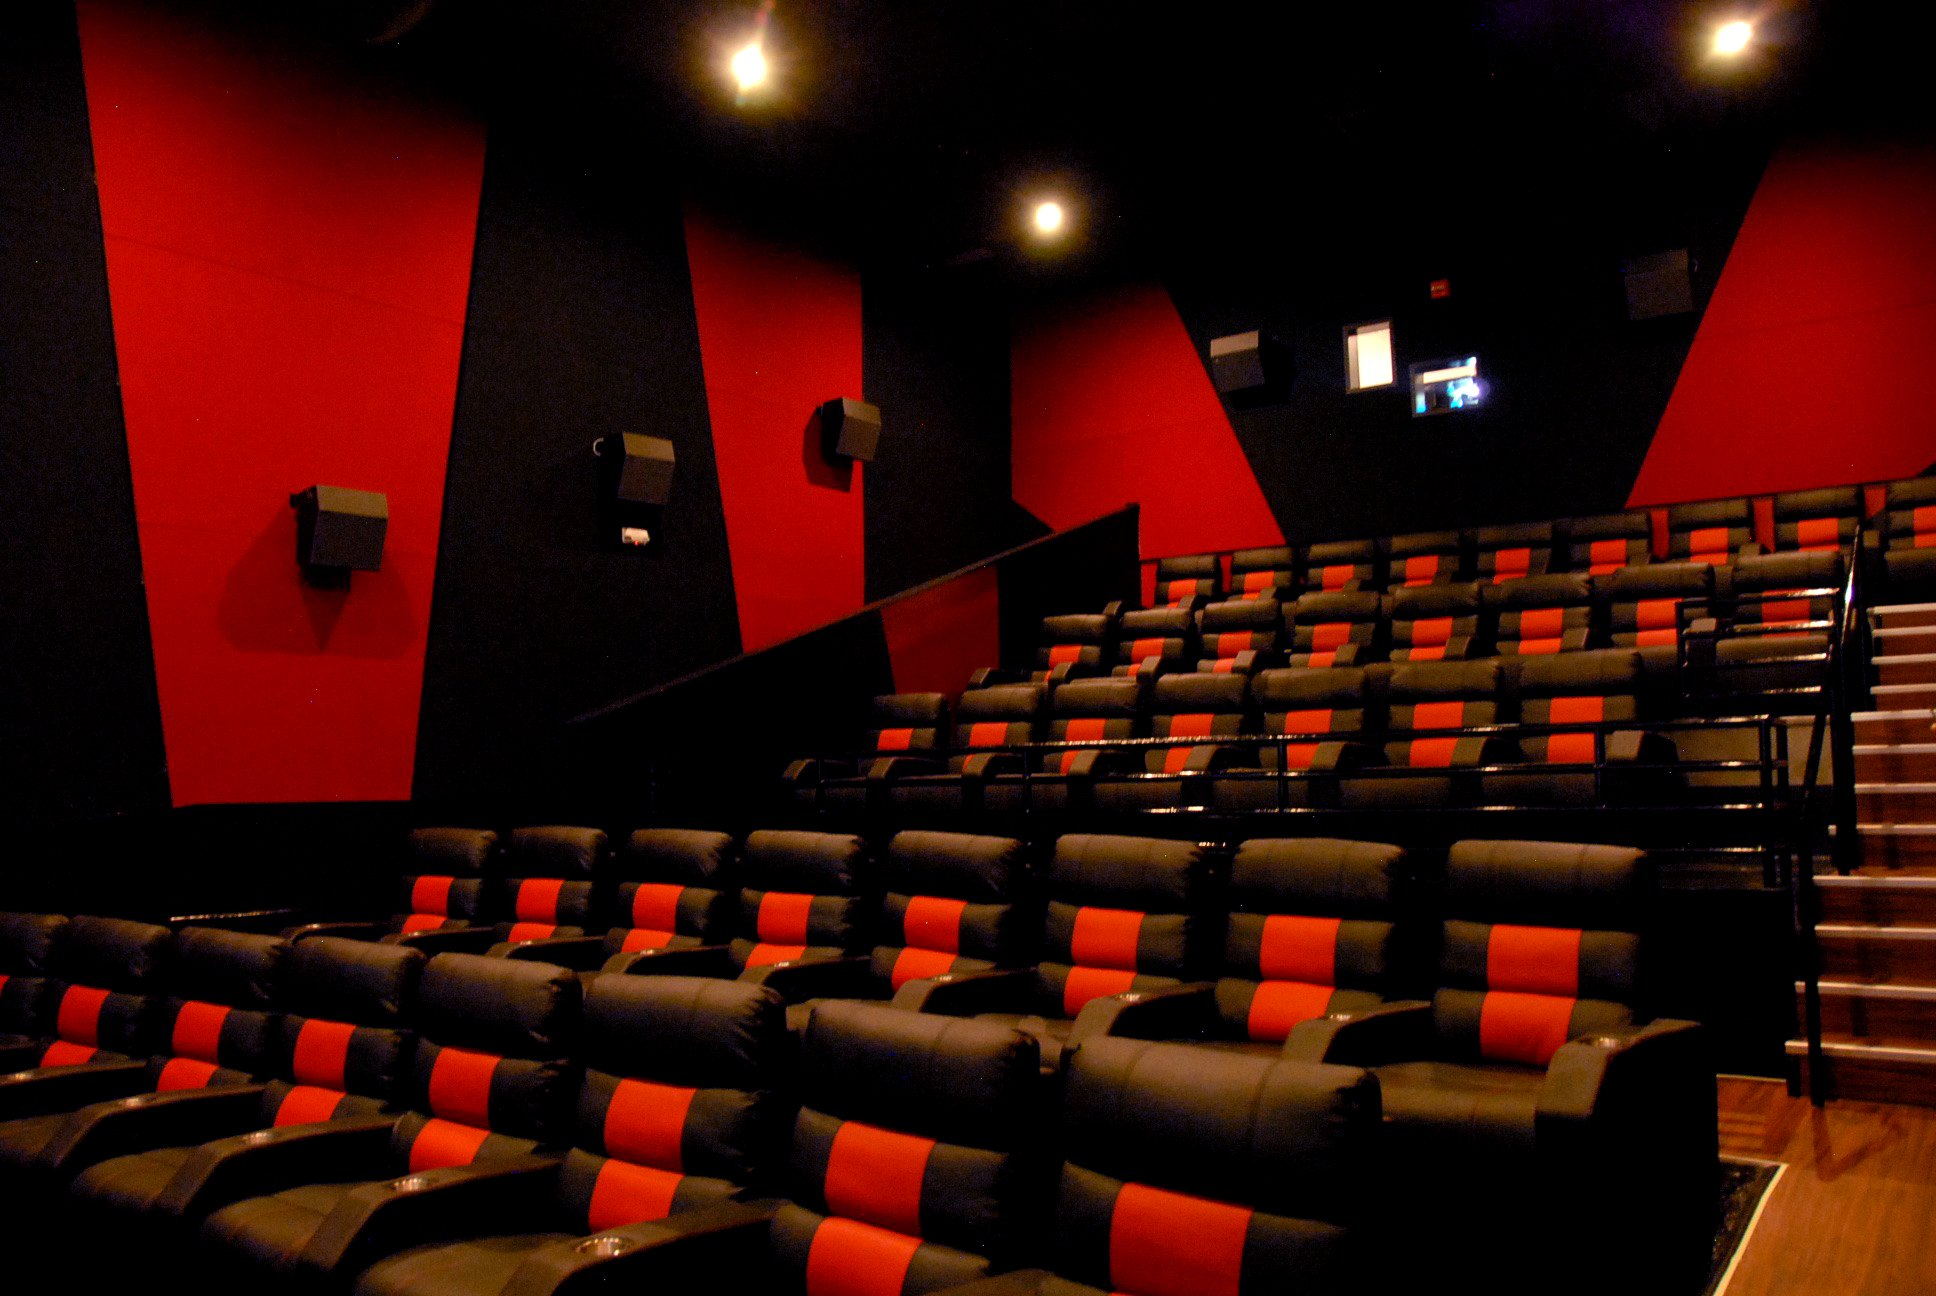 Red Cinemas on Twitter  New luxury electric recliners at @REDCinemas in Greensboro NC! #GSO #Theater #Movie #MyBigFatGreekWedding2 #soGSO ...  sc 1 st  Twitter & Red Cinemas on Twitter: